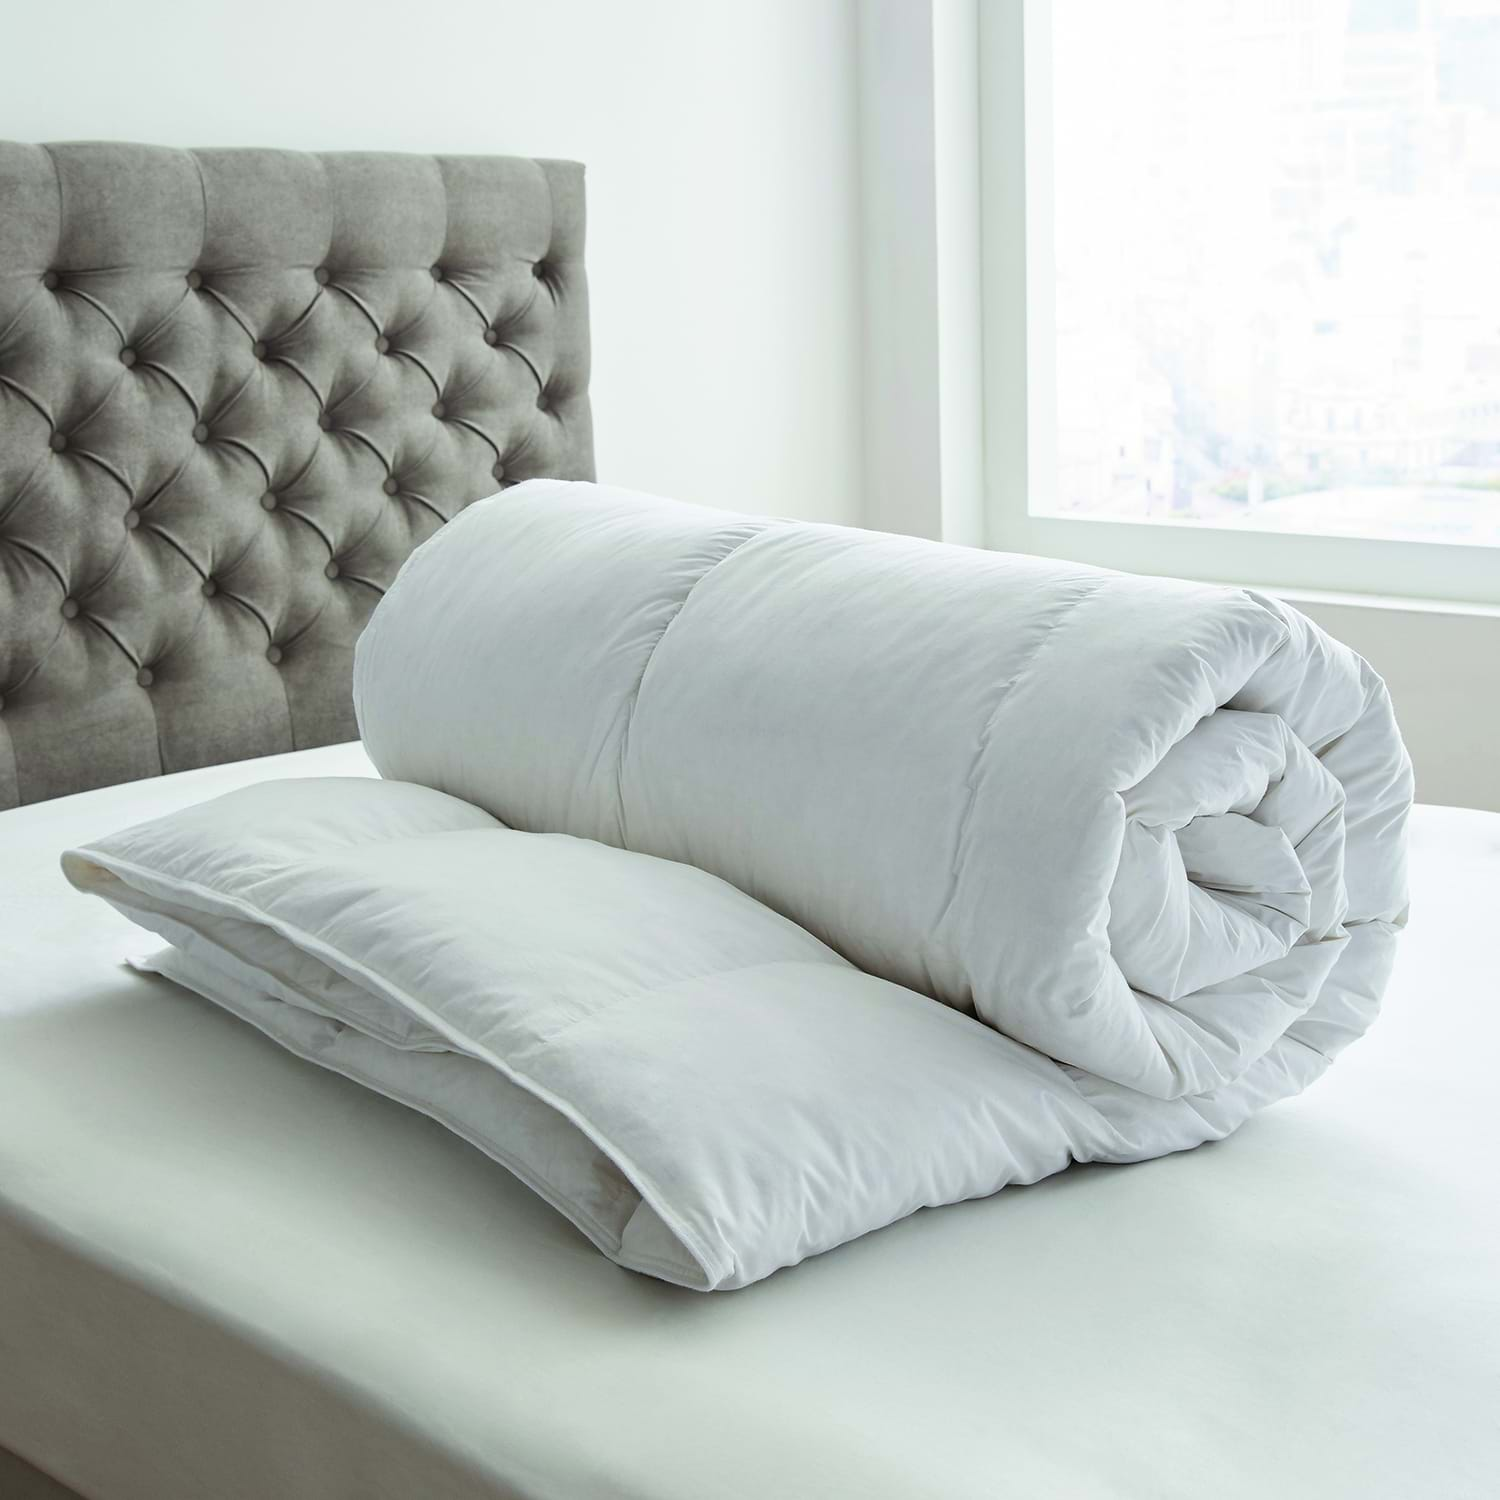 Image of Bedeck Goose Feather and Down Duvet, 13.5 Tog, Single, White